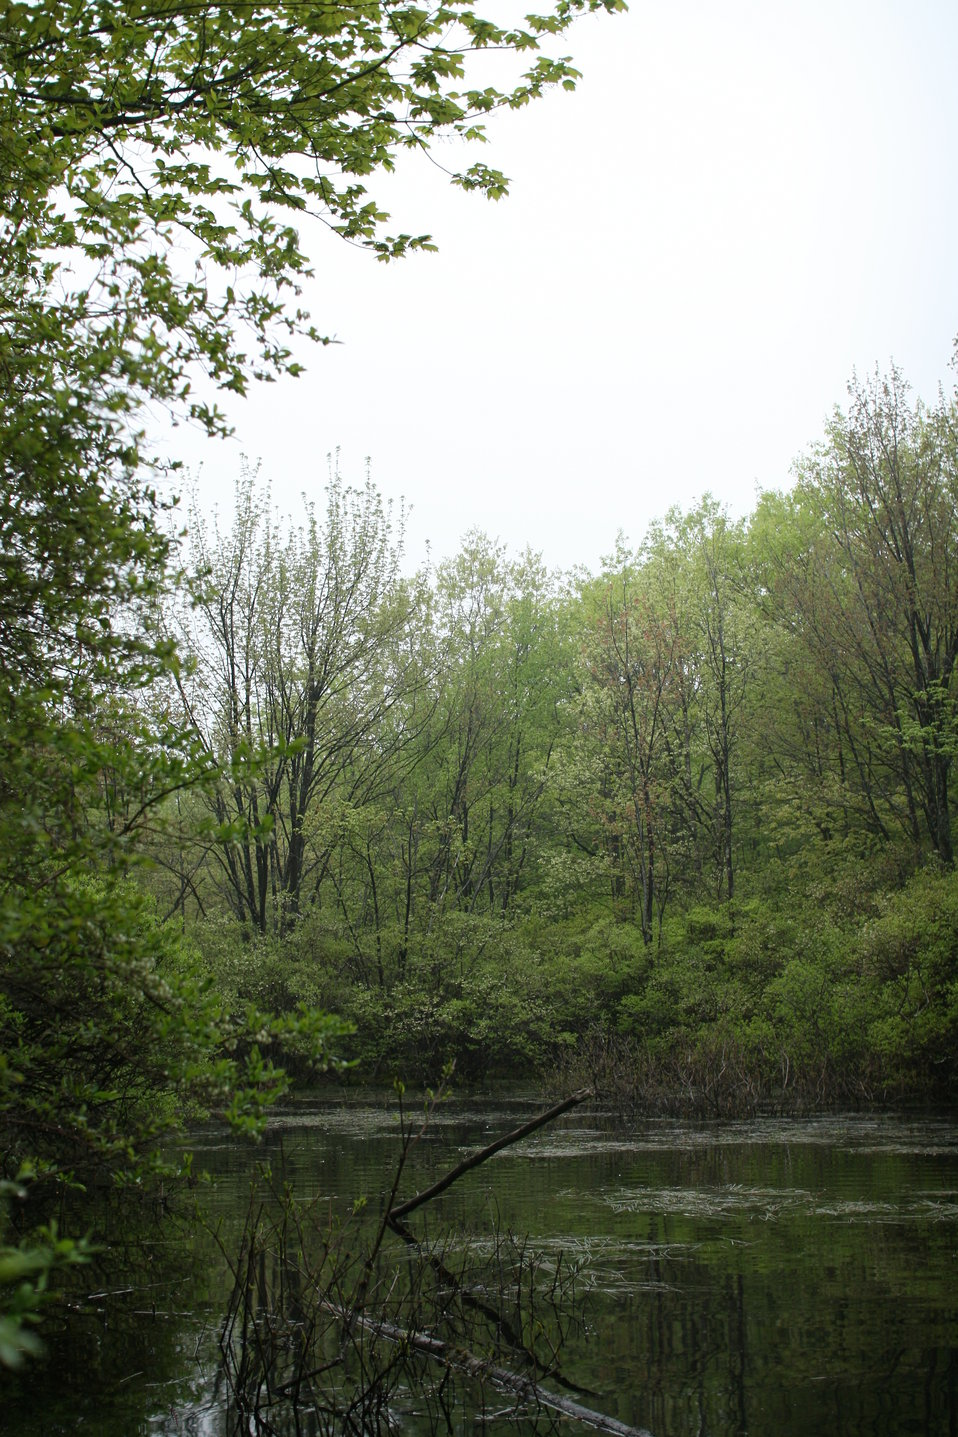 Blanding's turtle habitat at New Boston Air Force Base